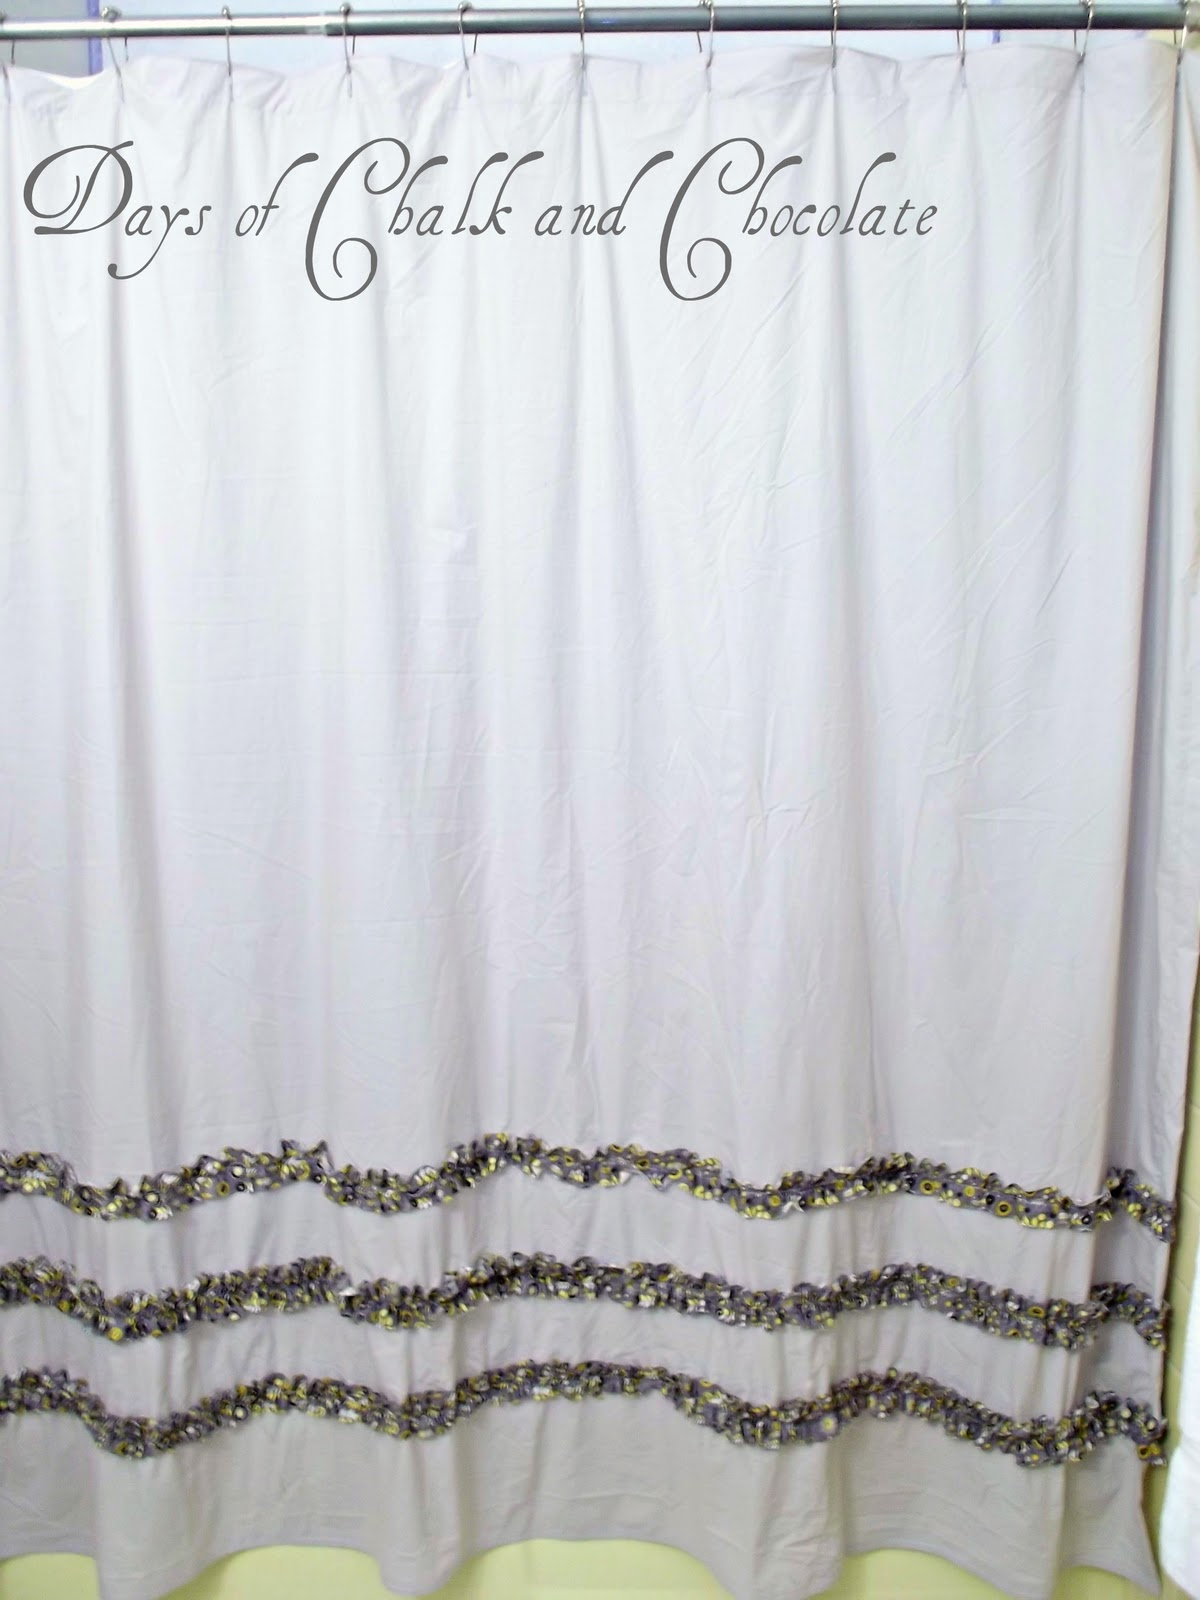 Days of Chalk and Chocolate: Shower Curtain